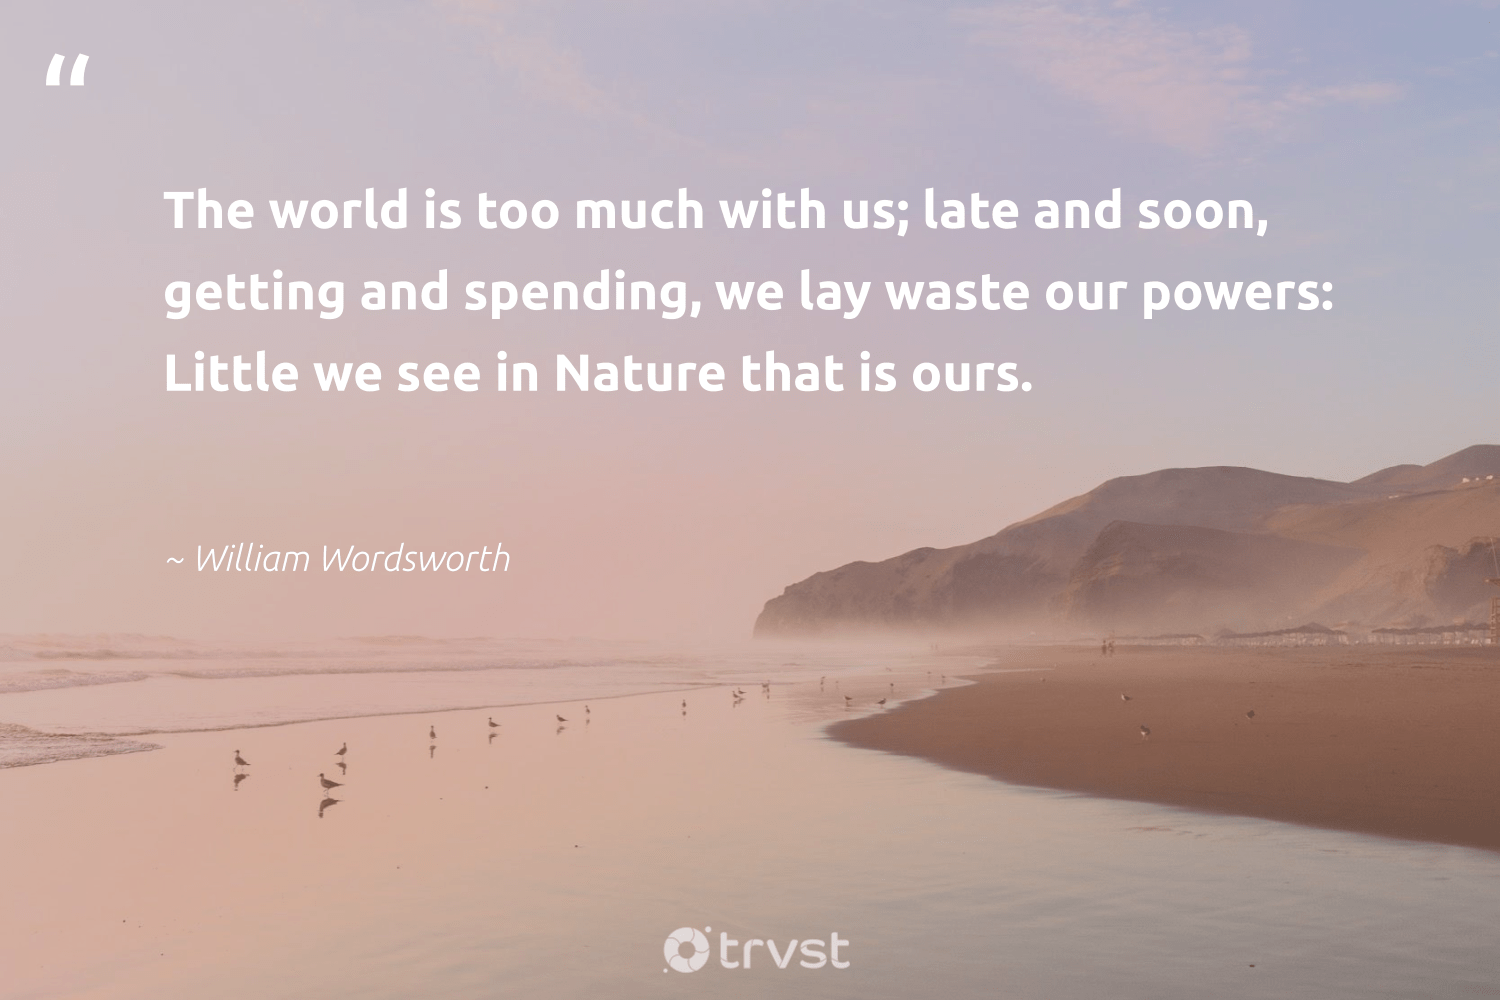 """""""The world is too much with us; late and soon, getting and spending, we lay waste our powers: Little we see in Nature that is ours.""""  - William Wordsworth #trvst #quotes #environment #waste #nature #mothernature #sustainability #sustainable #dotherightthing #conservation #earth #green"""